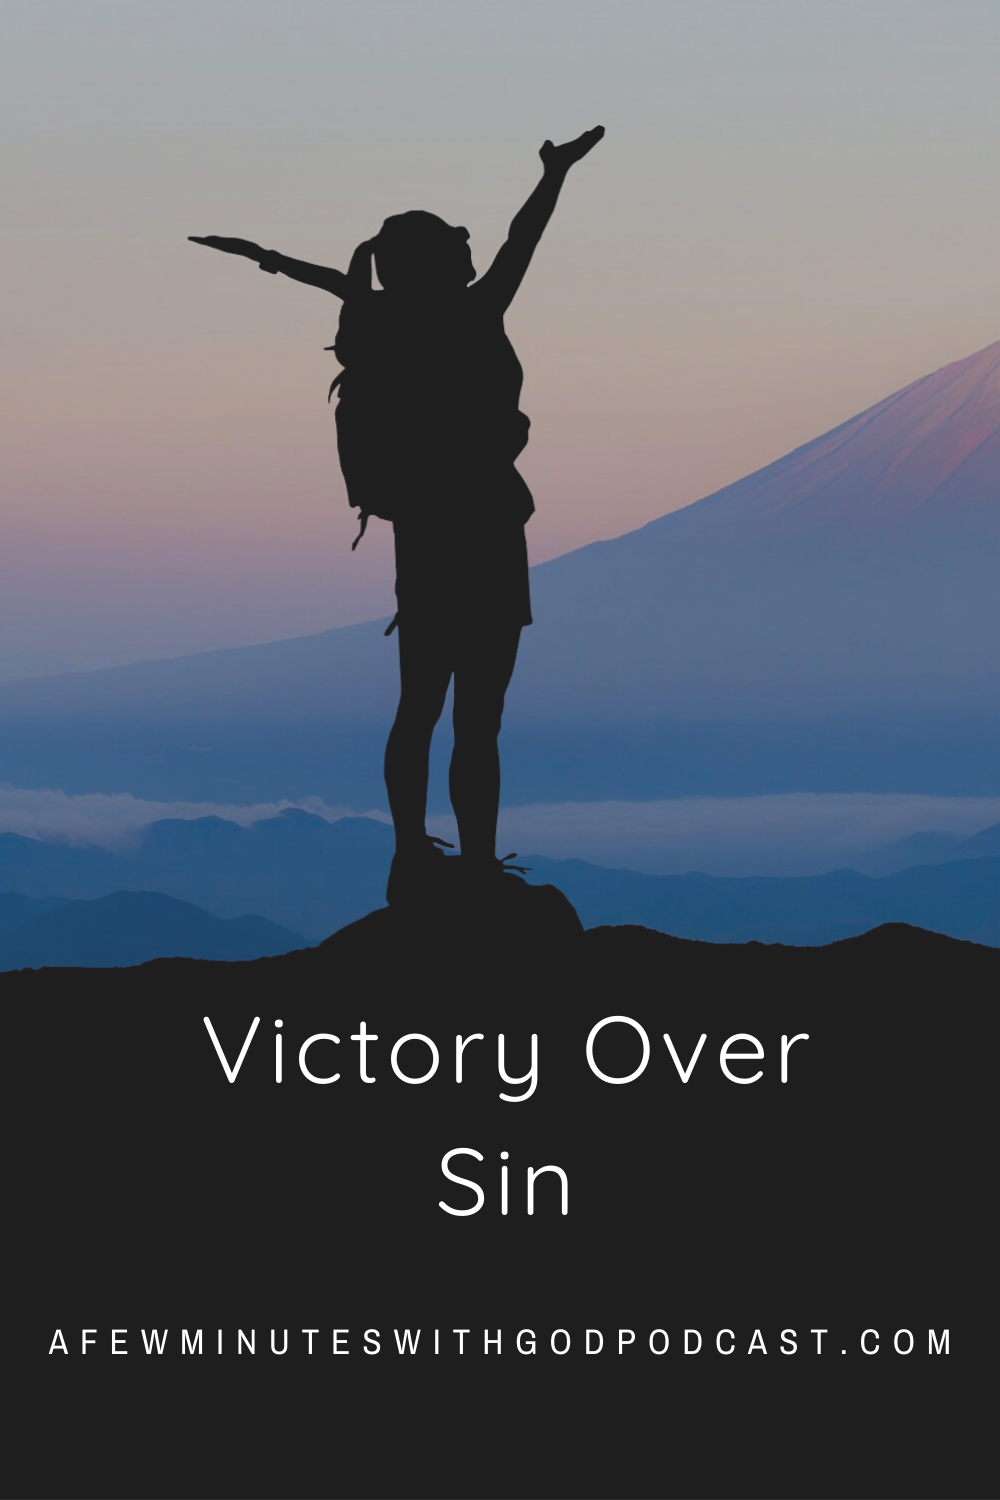 Victory Over Sin | There is victory over sin and in this episode we will talk about the true victory that comes from a relationship with Christ! | #podcast #christianpodcast #victoryoversin #sin #victory